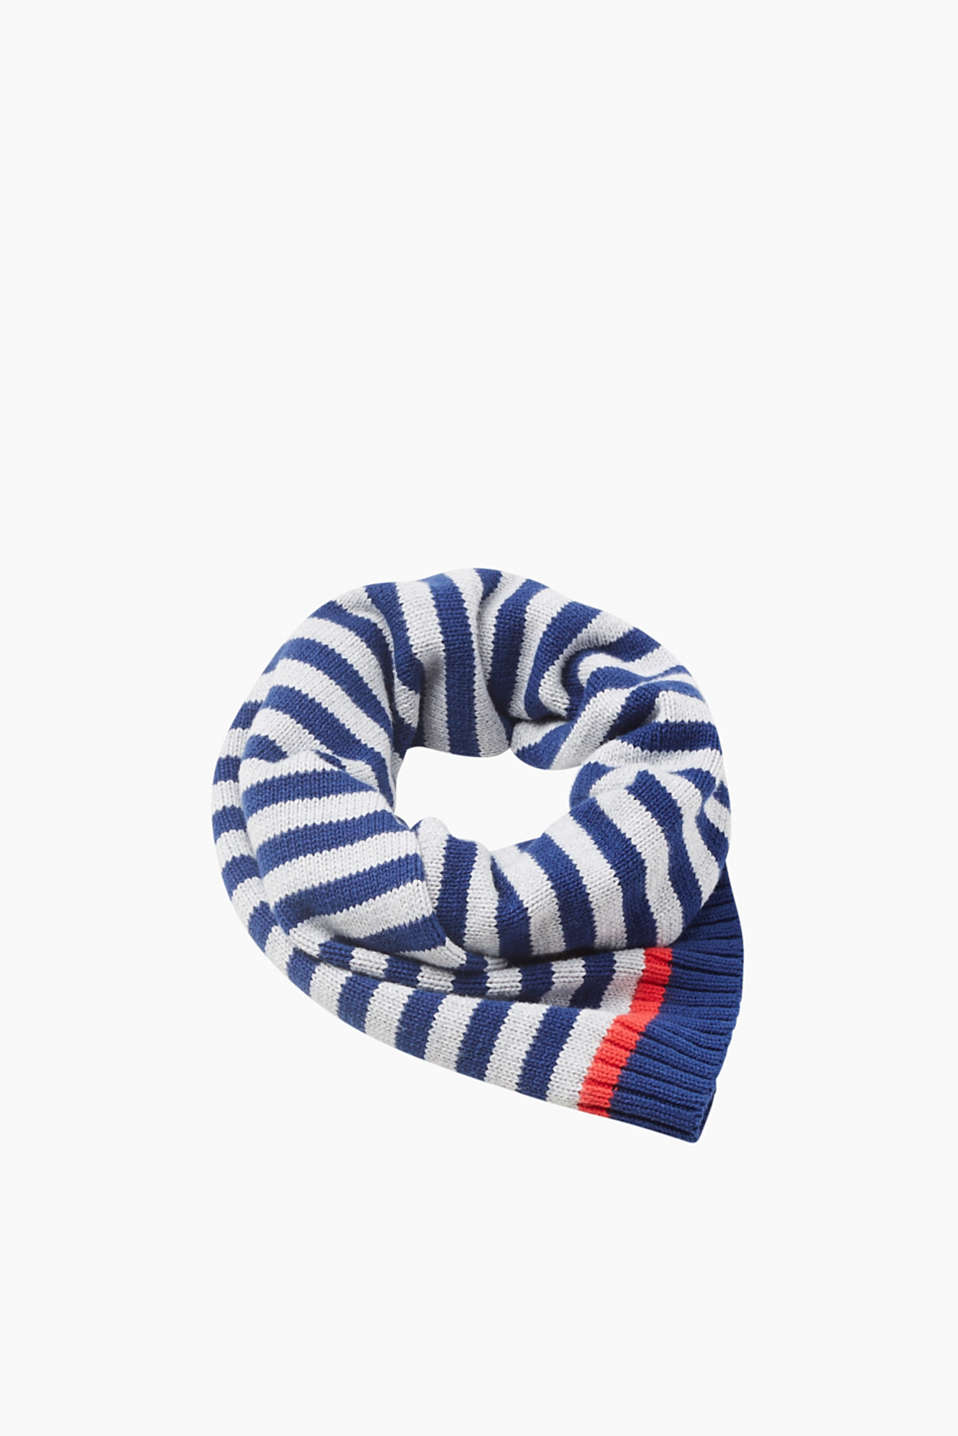 The perfect, basic accessory: this striped cotton scarf generates wonderful warmth and feels sensationally soft.